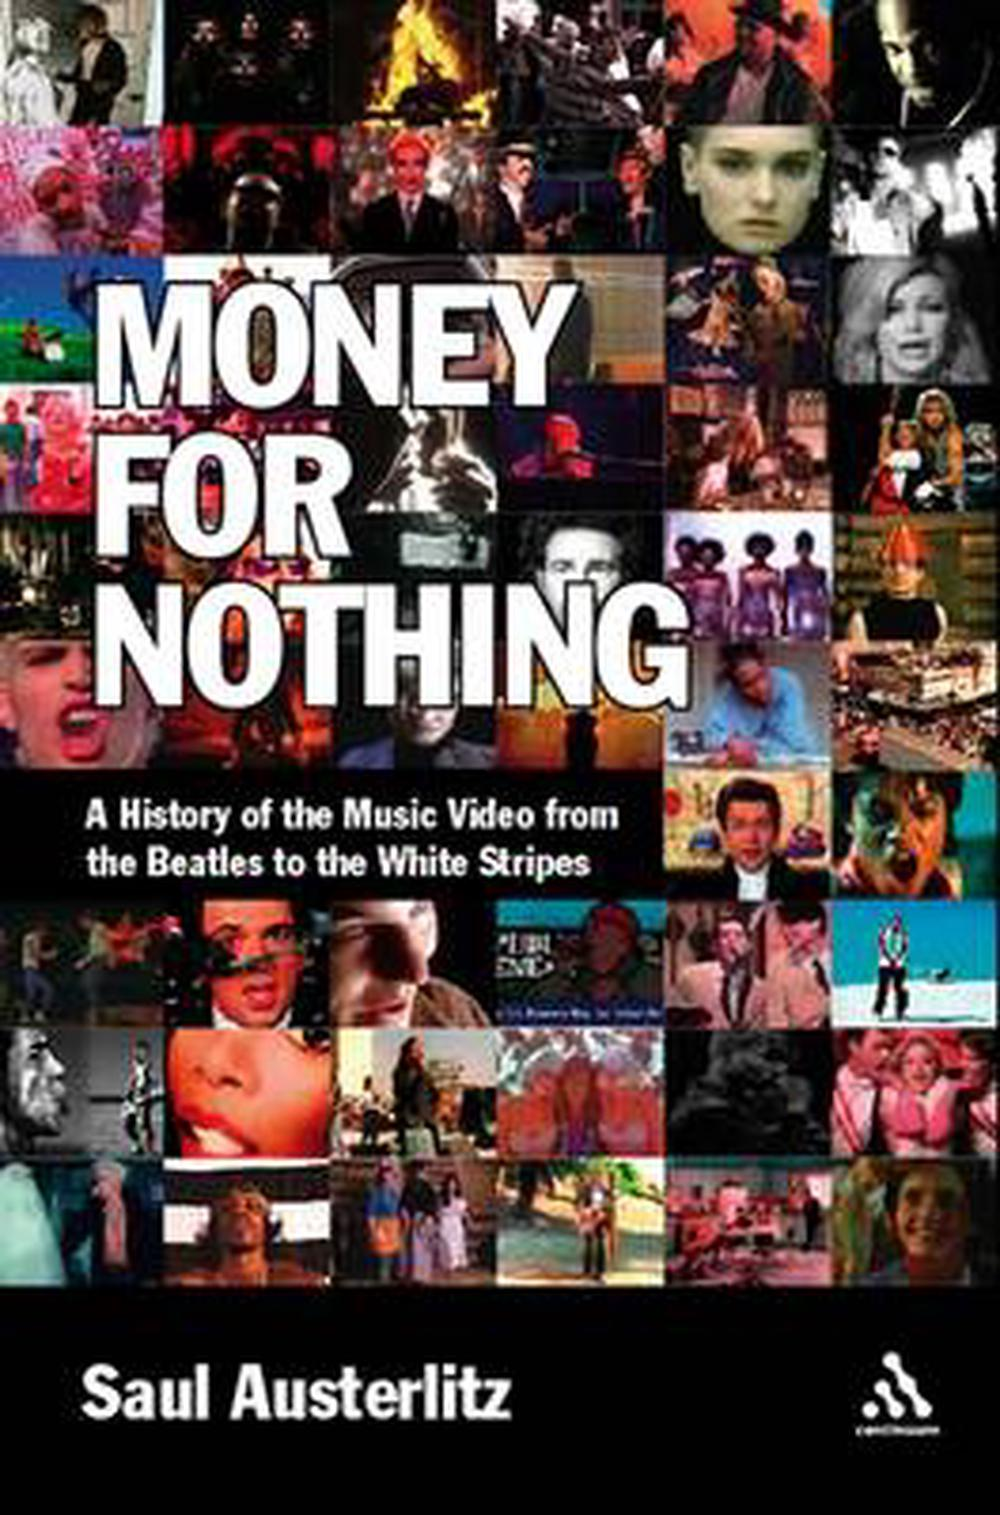 Money for Nothing A History of the Music Video from the Beatles to the White Stripes